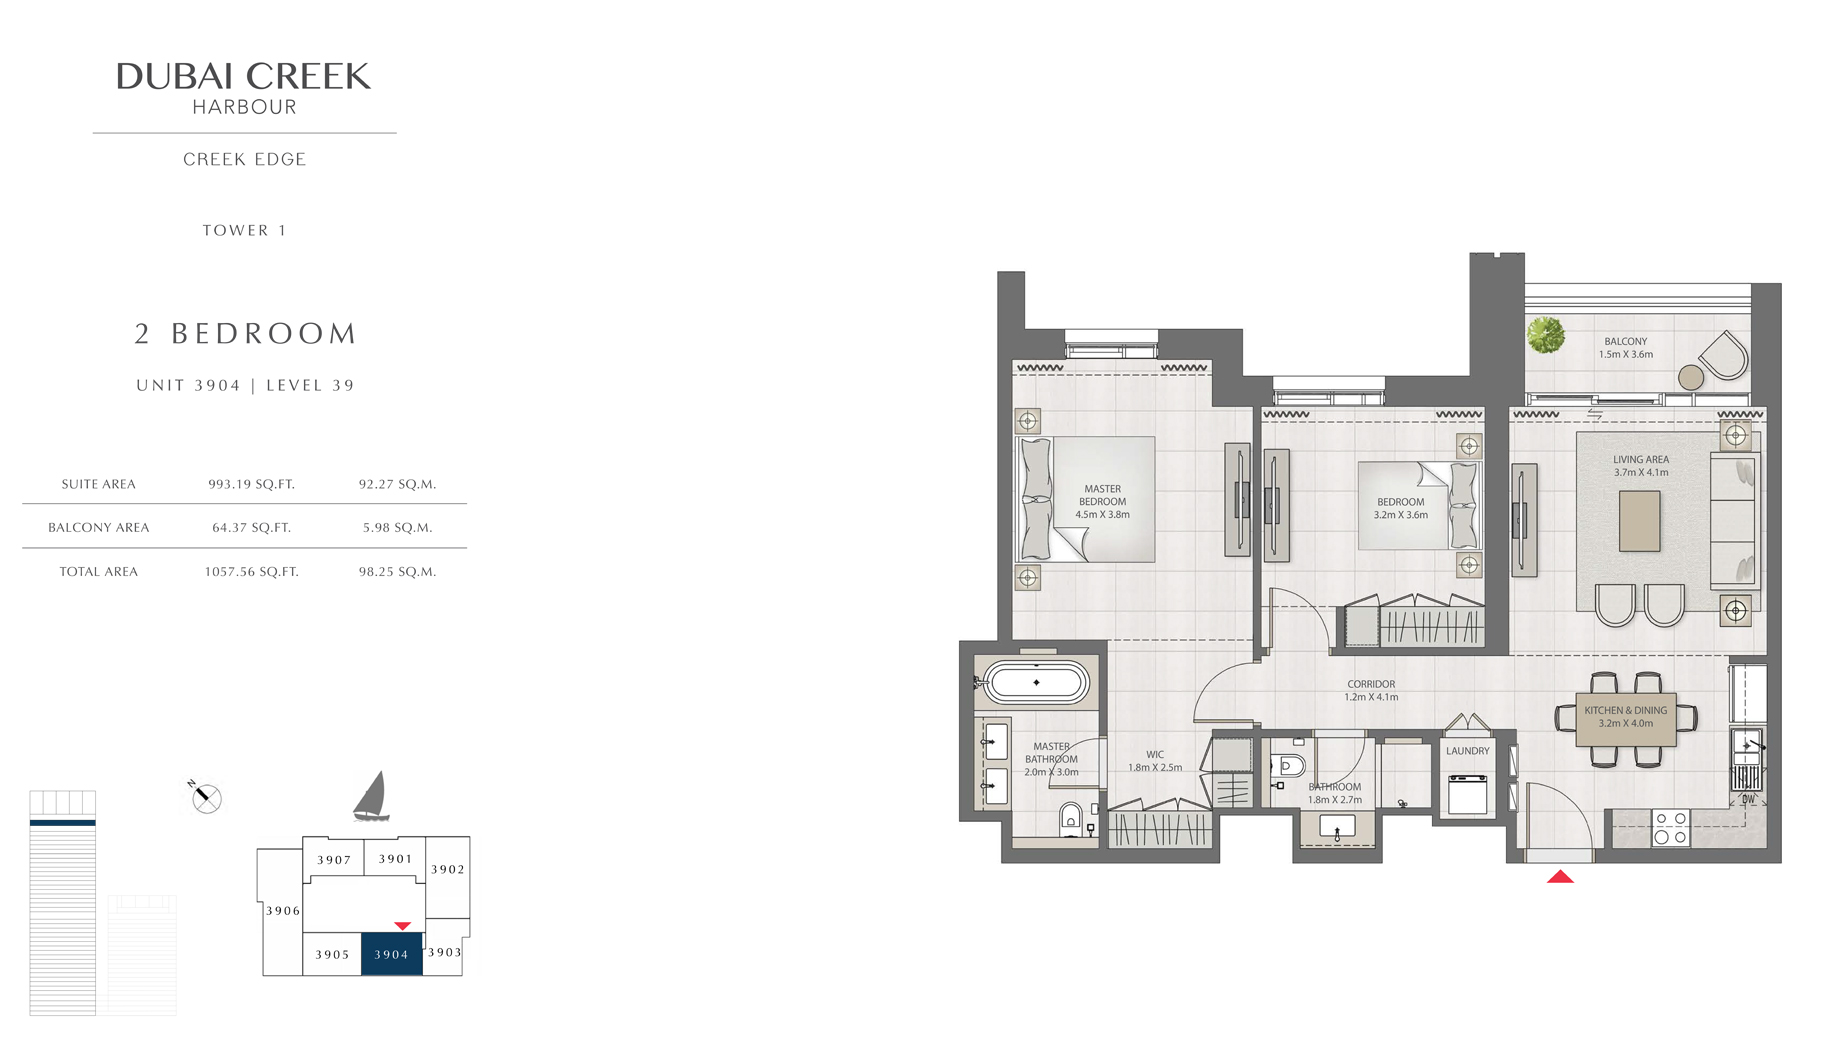 2 Bedroom Tower 1 Unit 3904 Level 39 Size 1057 sq.ft